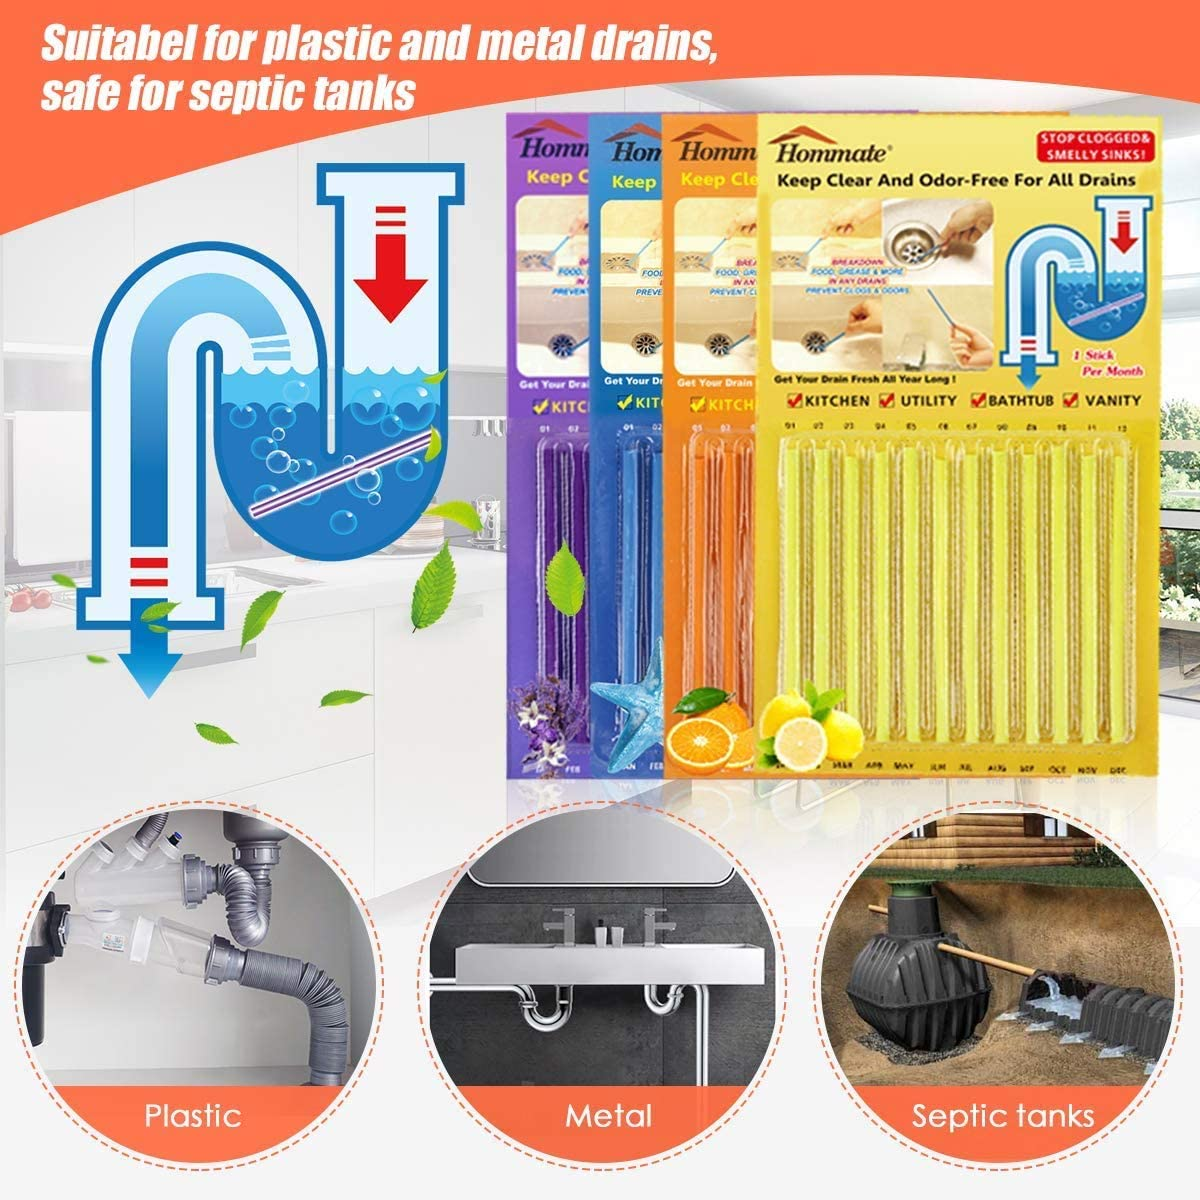 Buy Drain Sticks Drain Cleaner Sticks Drain Deodorizer Sticks For Preventing Clogs Eliminating Smelly Odor Kitchen Bathroom Sink Septic Tank Safe As Seen Online In Germany B07t885w3k